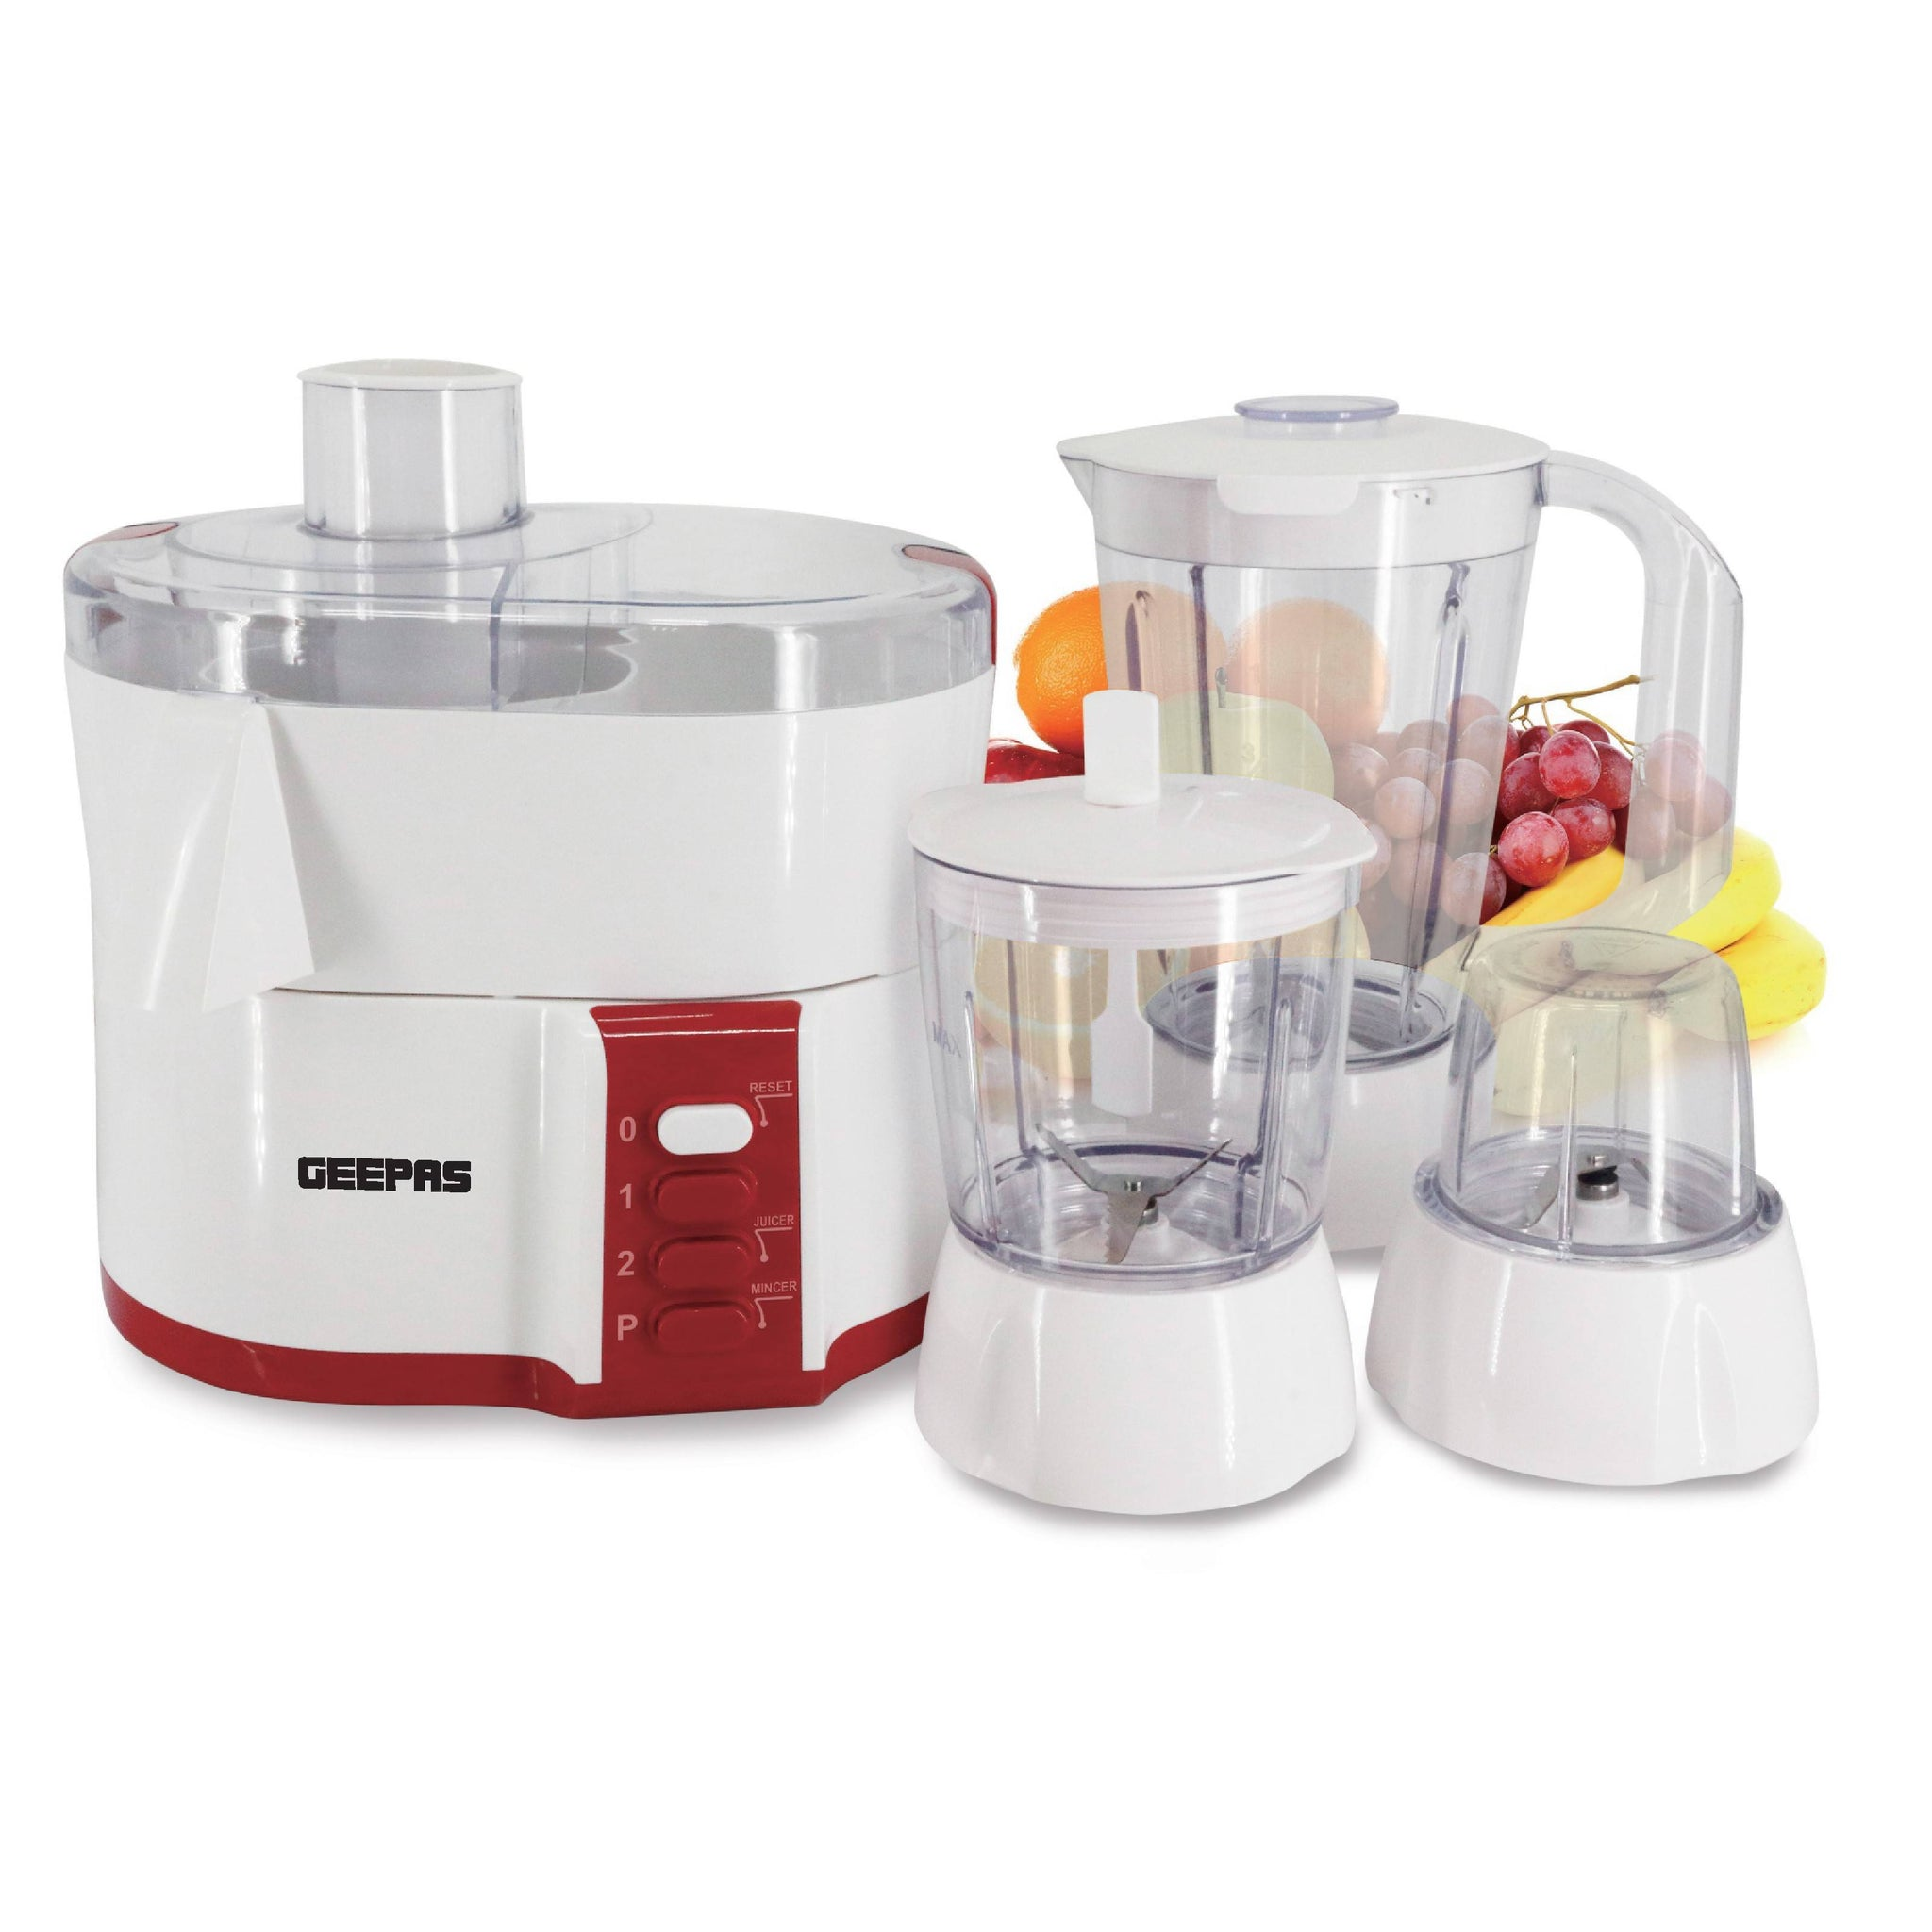 Geepas 4 In 1 Food Processor 2 Speed Function With Safety Lock 1x4 - White, GSB9890 - 2071MALL